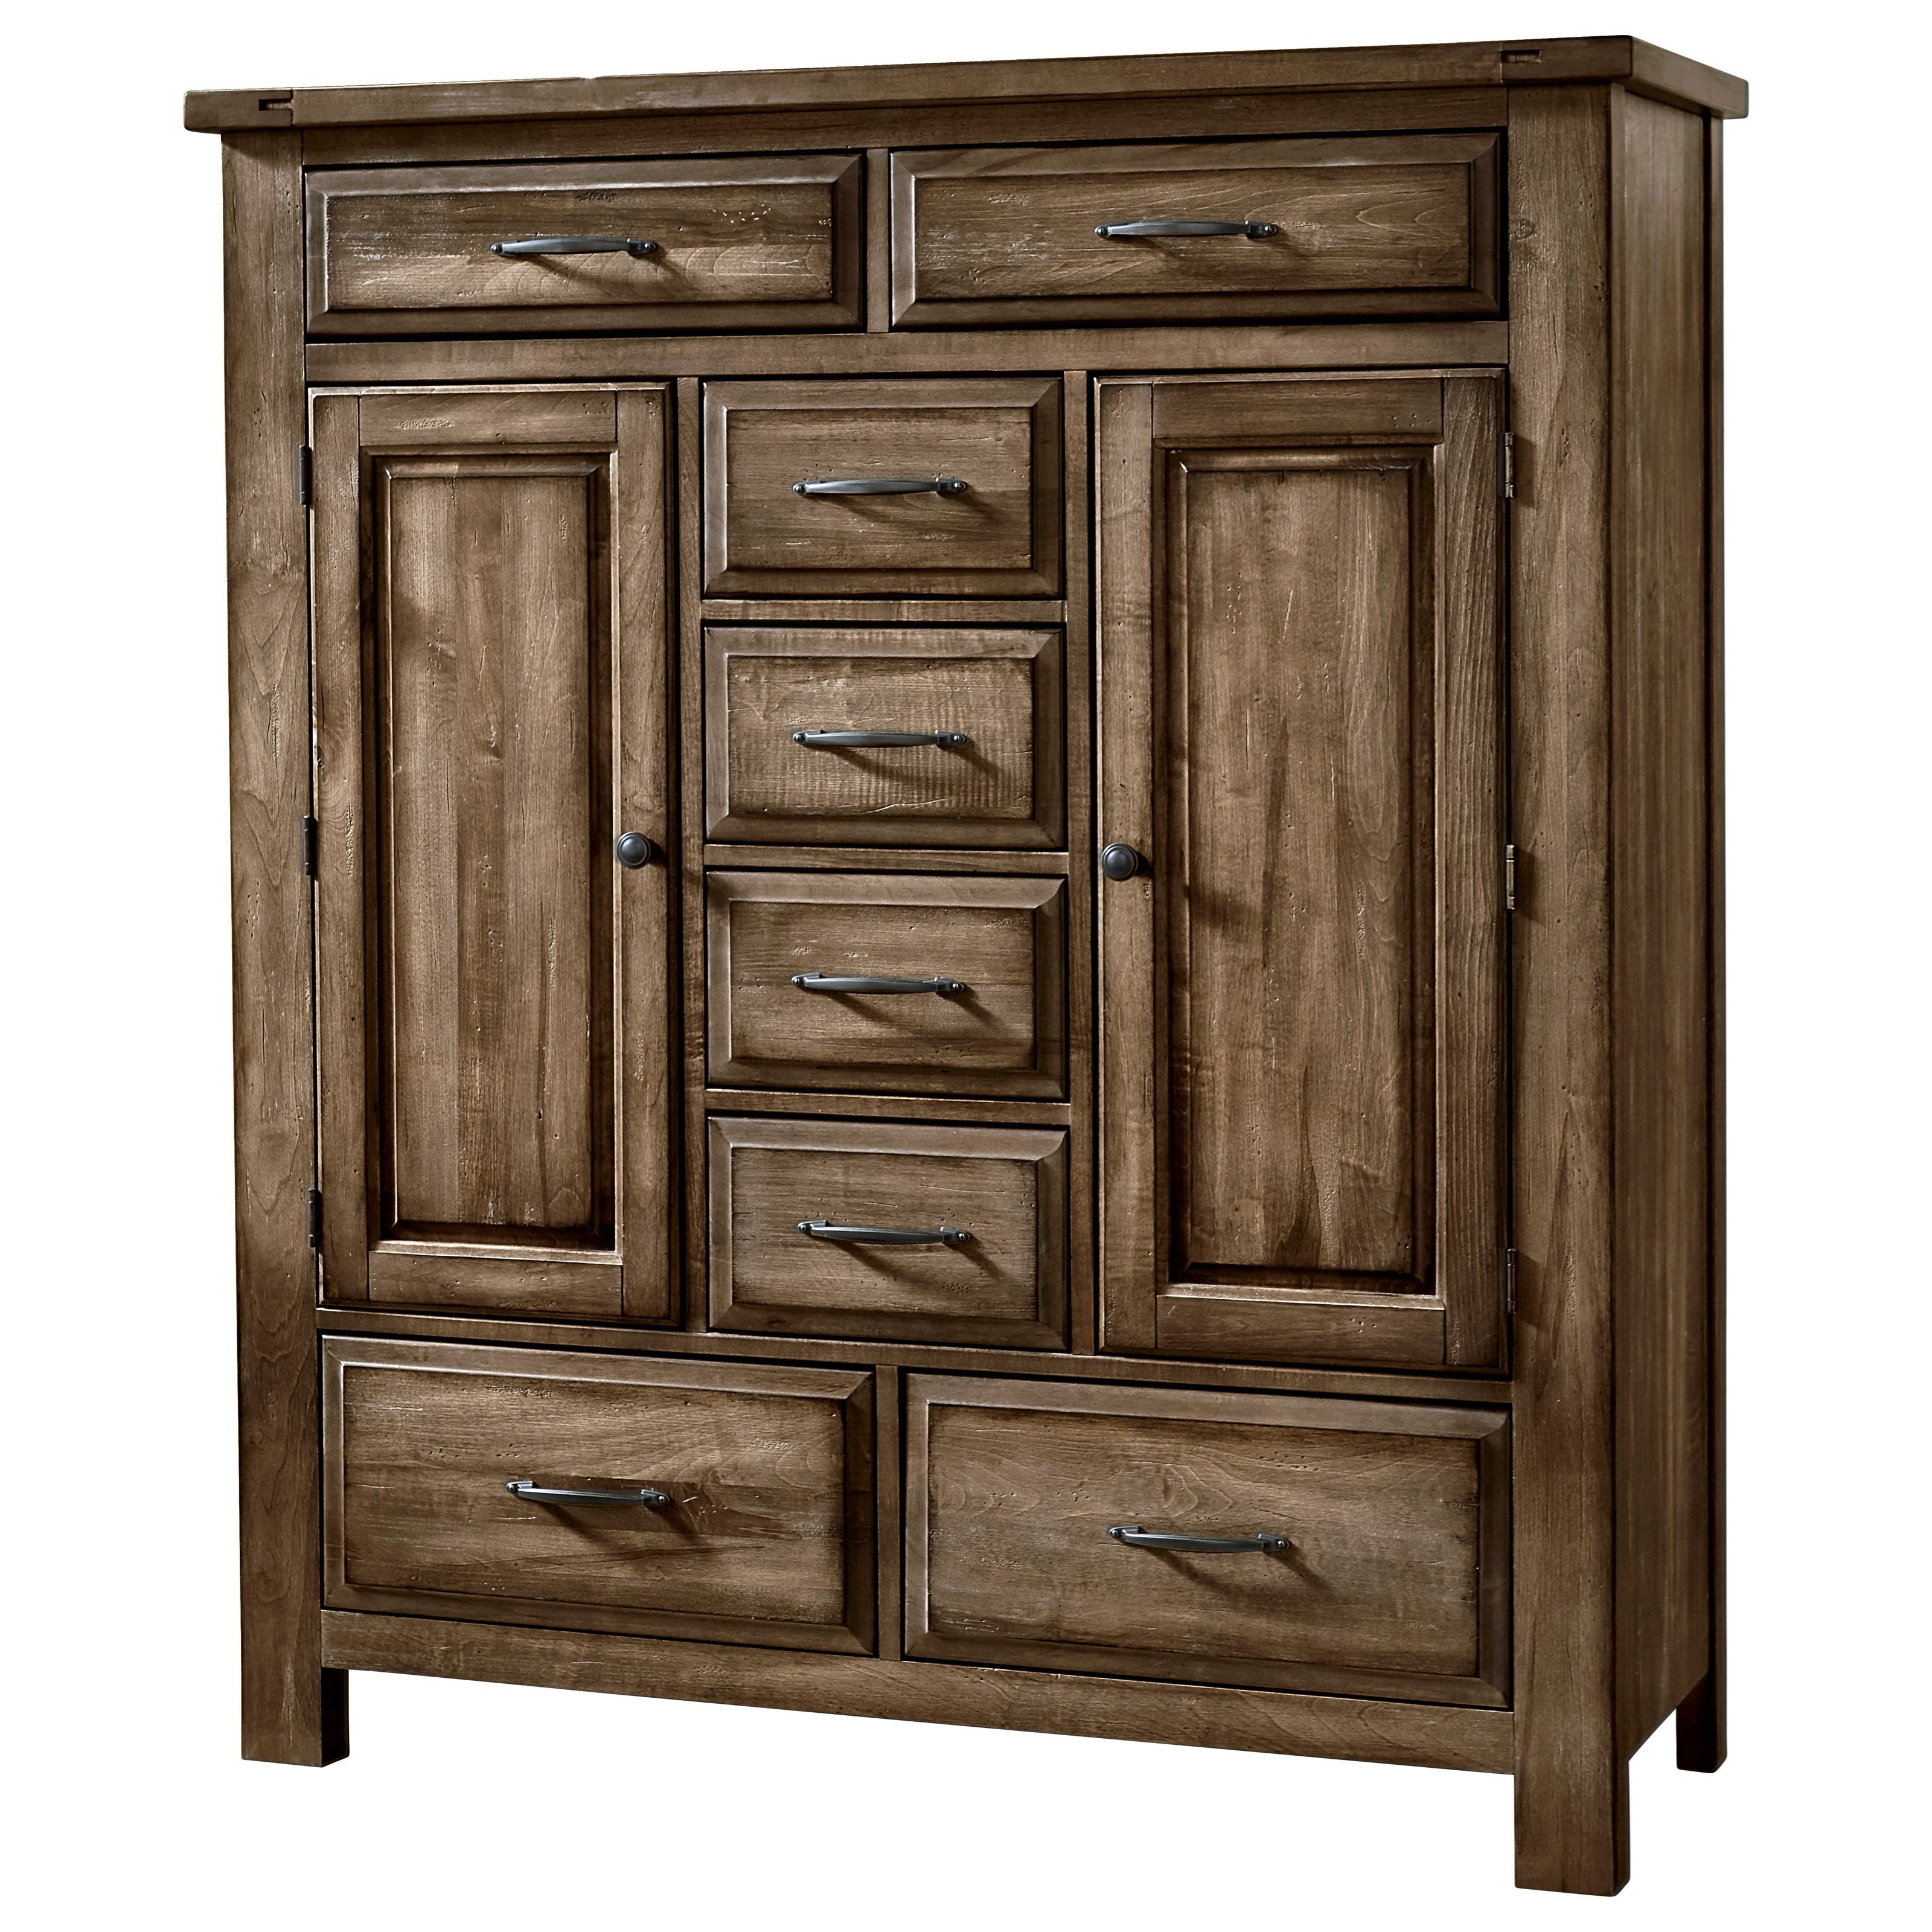 Sweater Chest - 8 Drawers 2 Doors